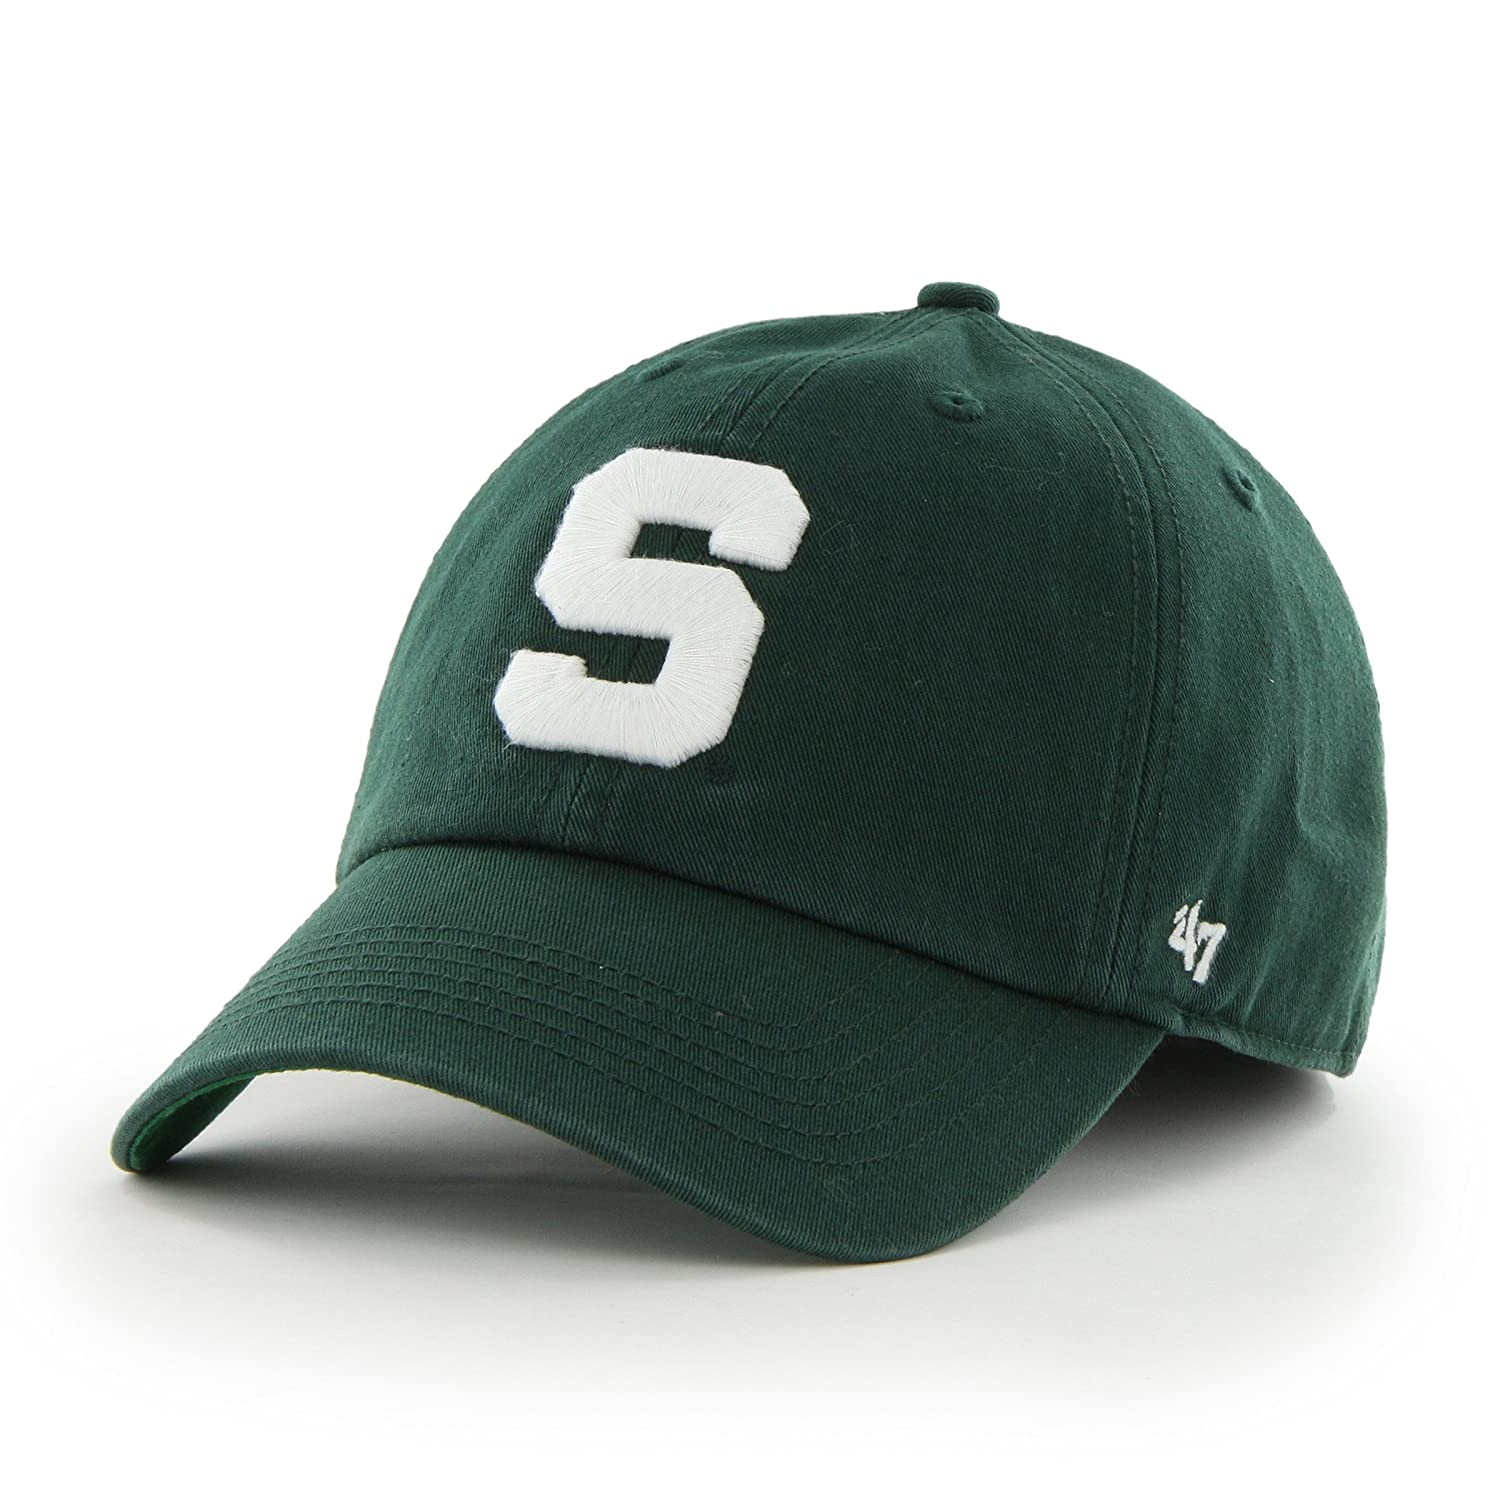 '47 Brand NCAA Michigan State Spartans Franchise Fitted Hat 47Brand Replen Code C-FSVNF29RPF-DG-L